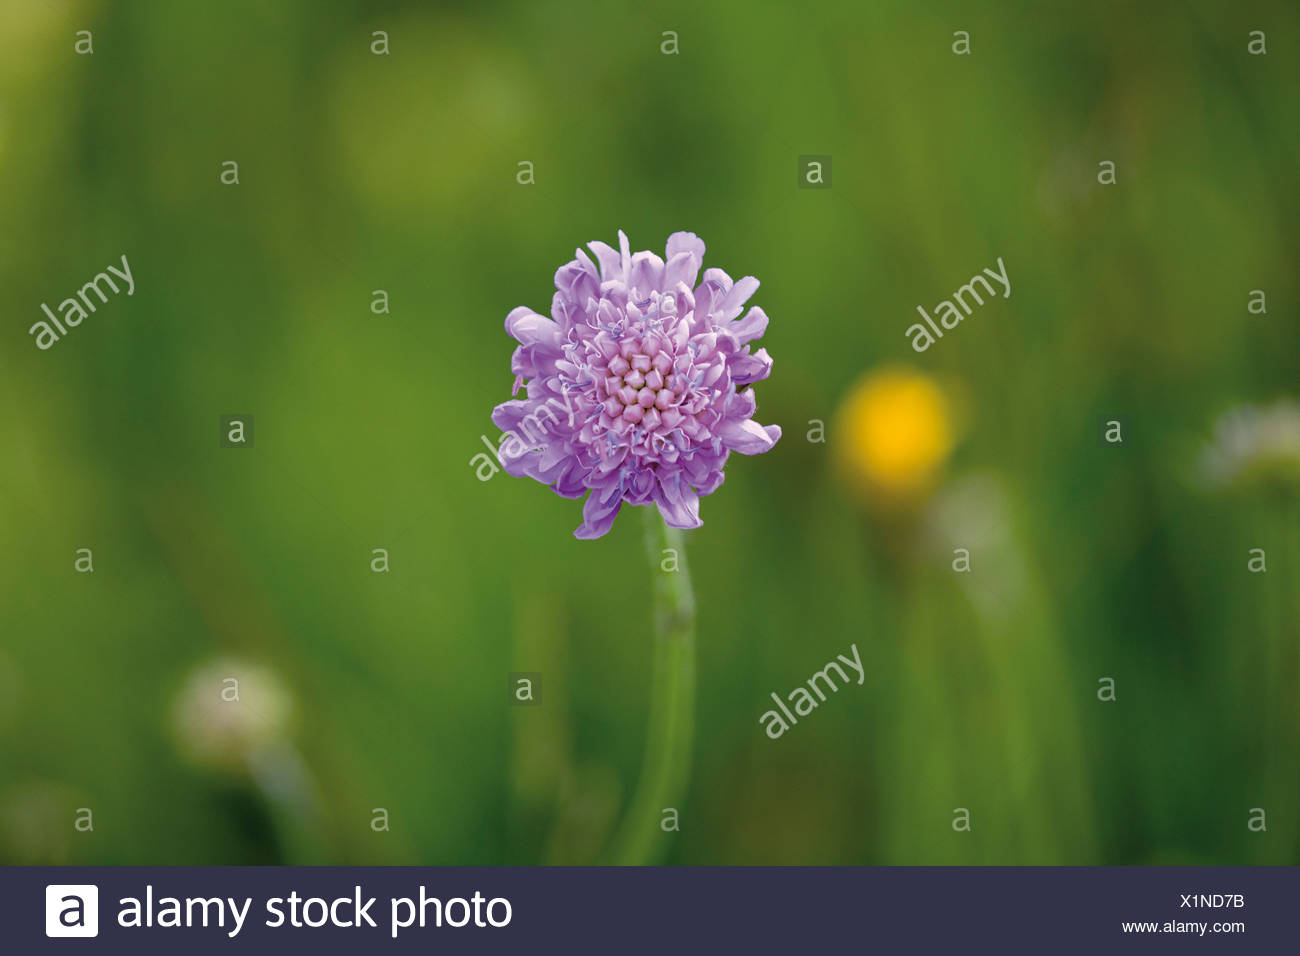 Germany, Bavaria, Pincushion Flower (Scabiosa columbaria), close-up - Stock Image